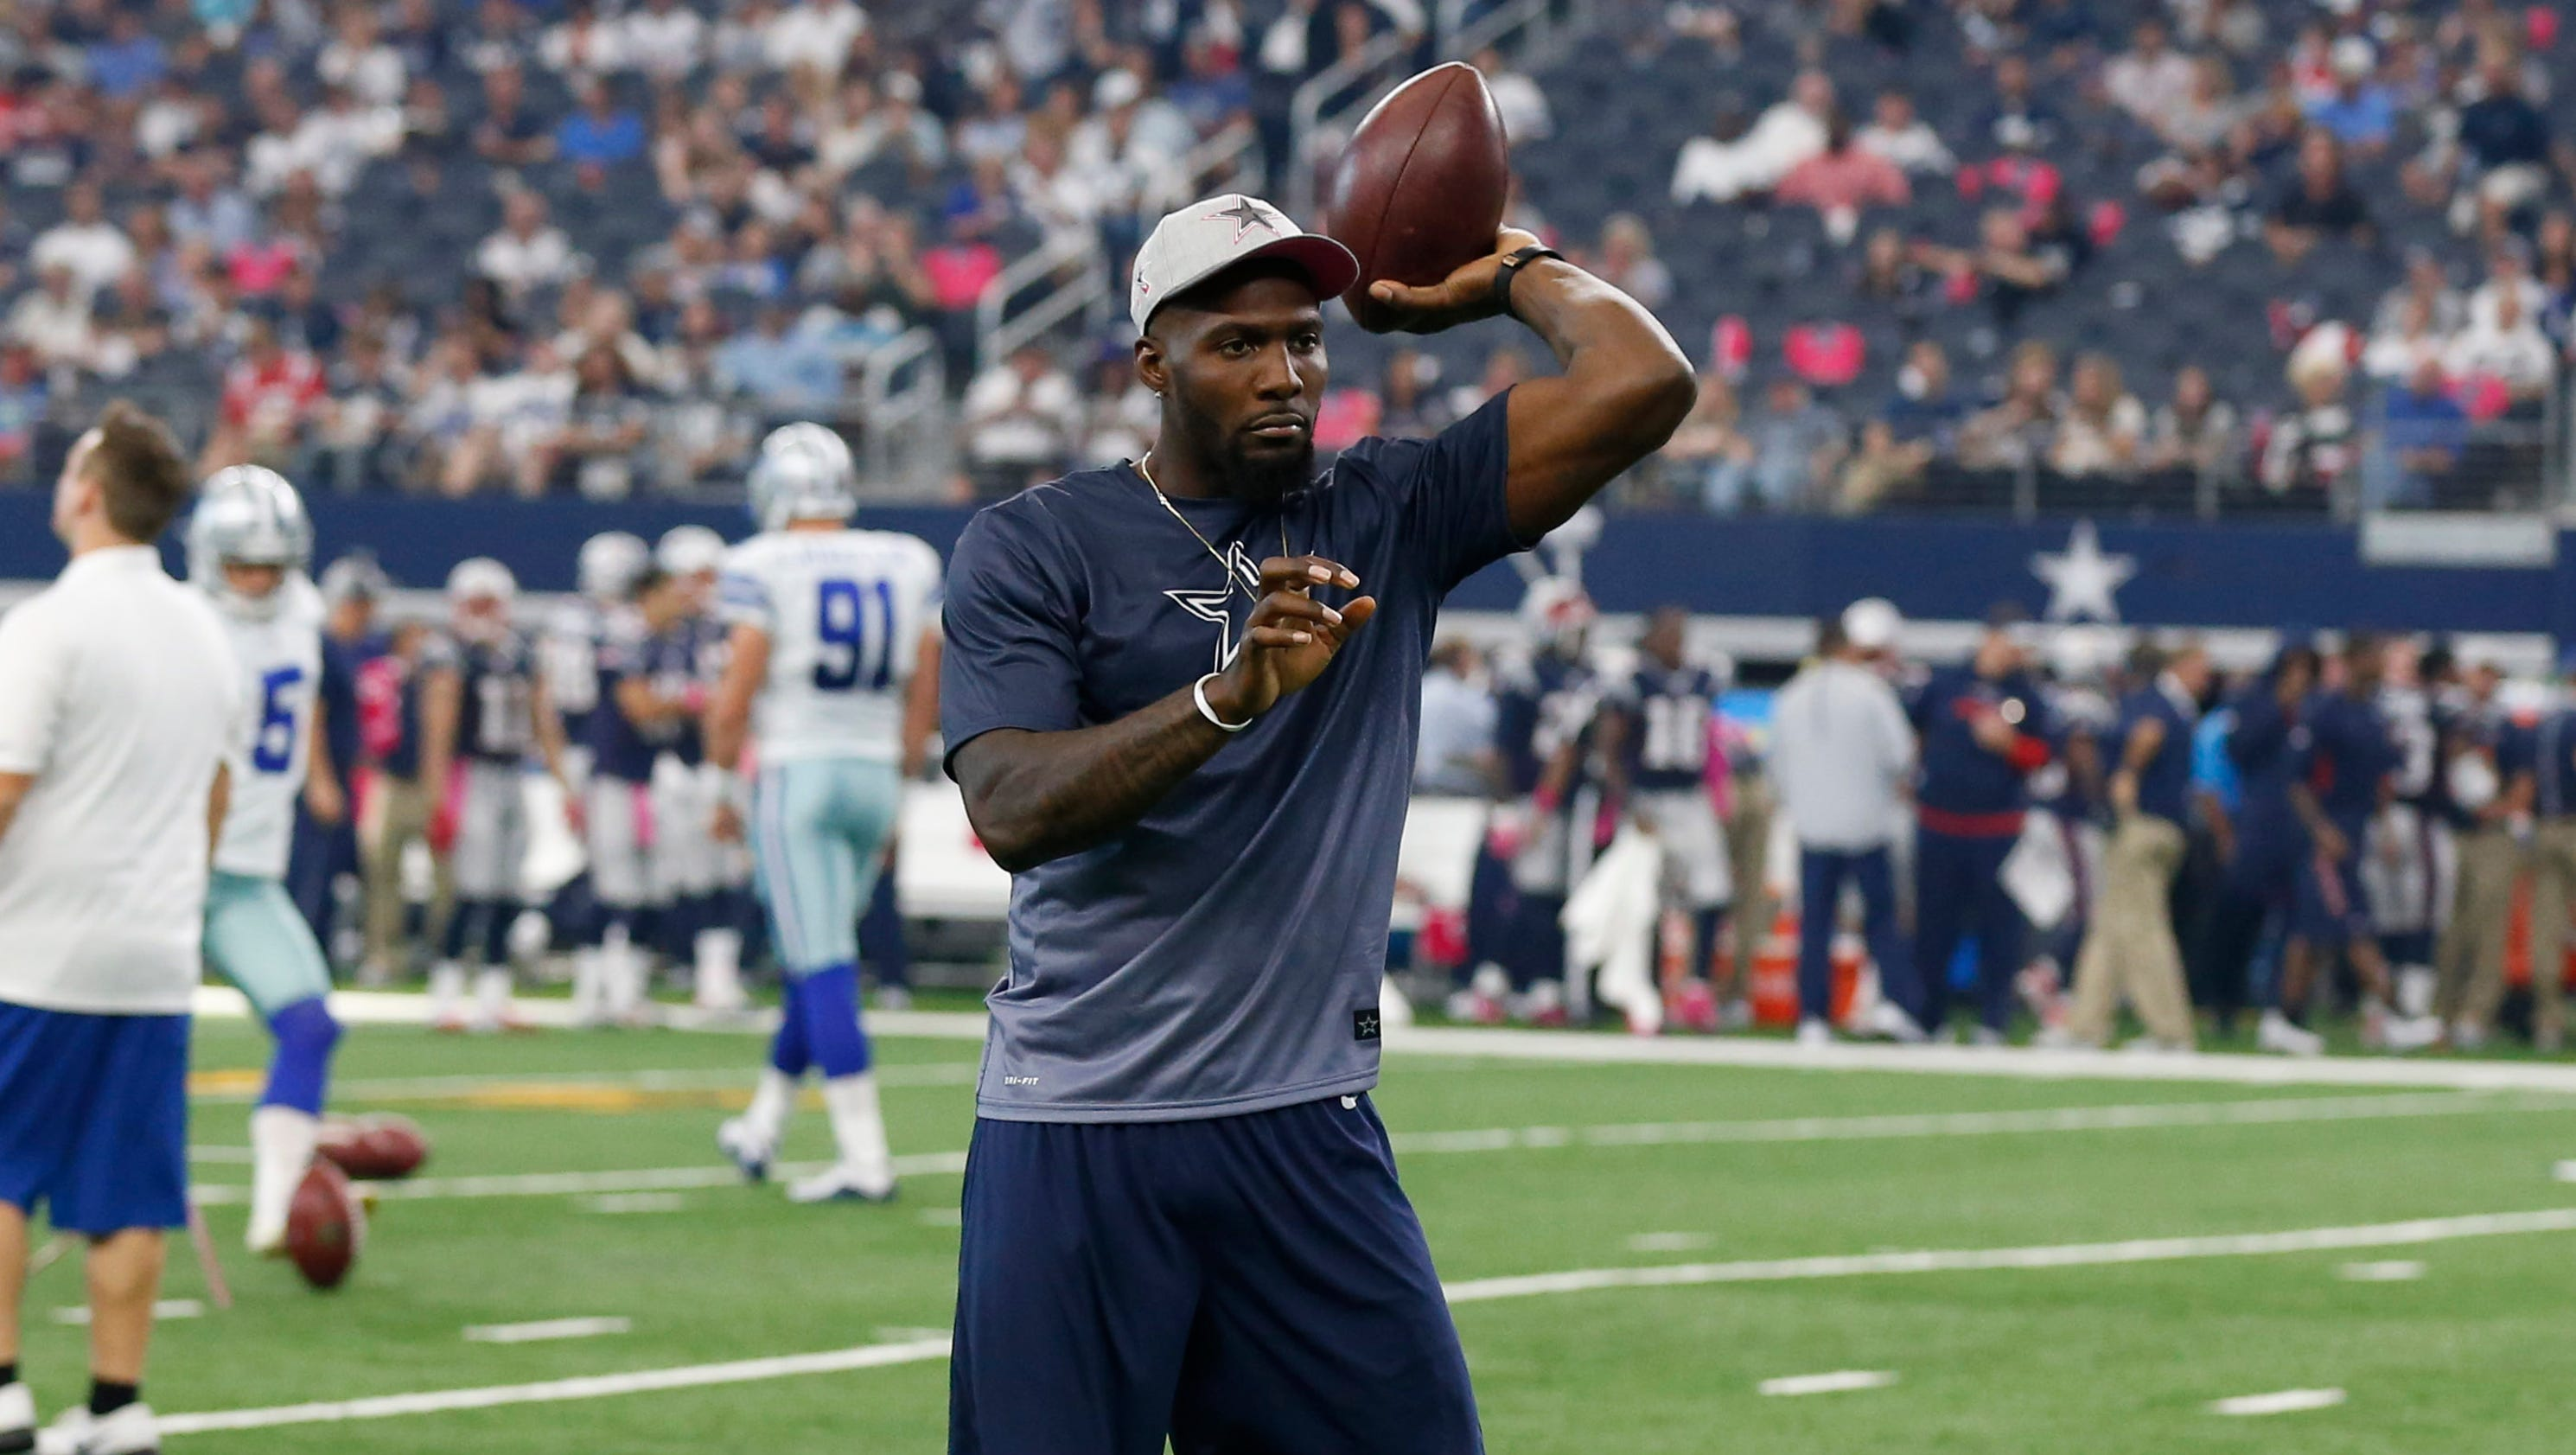 Cowboys' Dez Bryant practices for first time since ...